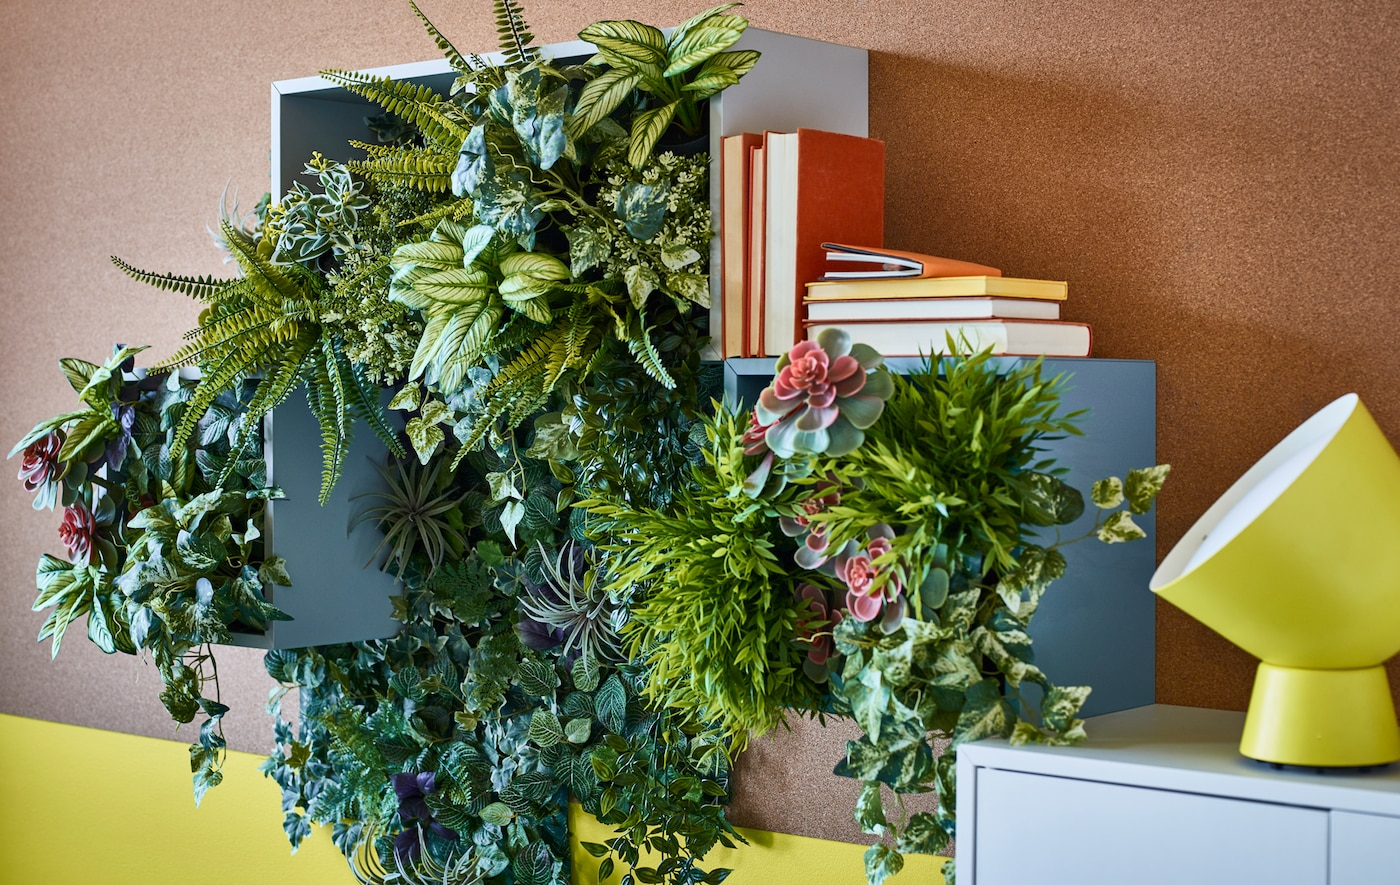 Artificial green potted plants used to create wall décor in open storage boxes.